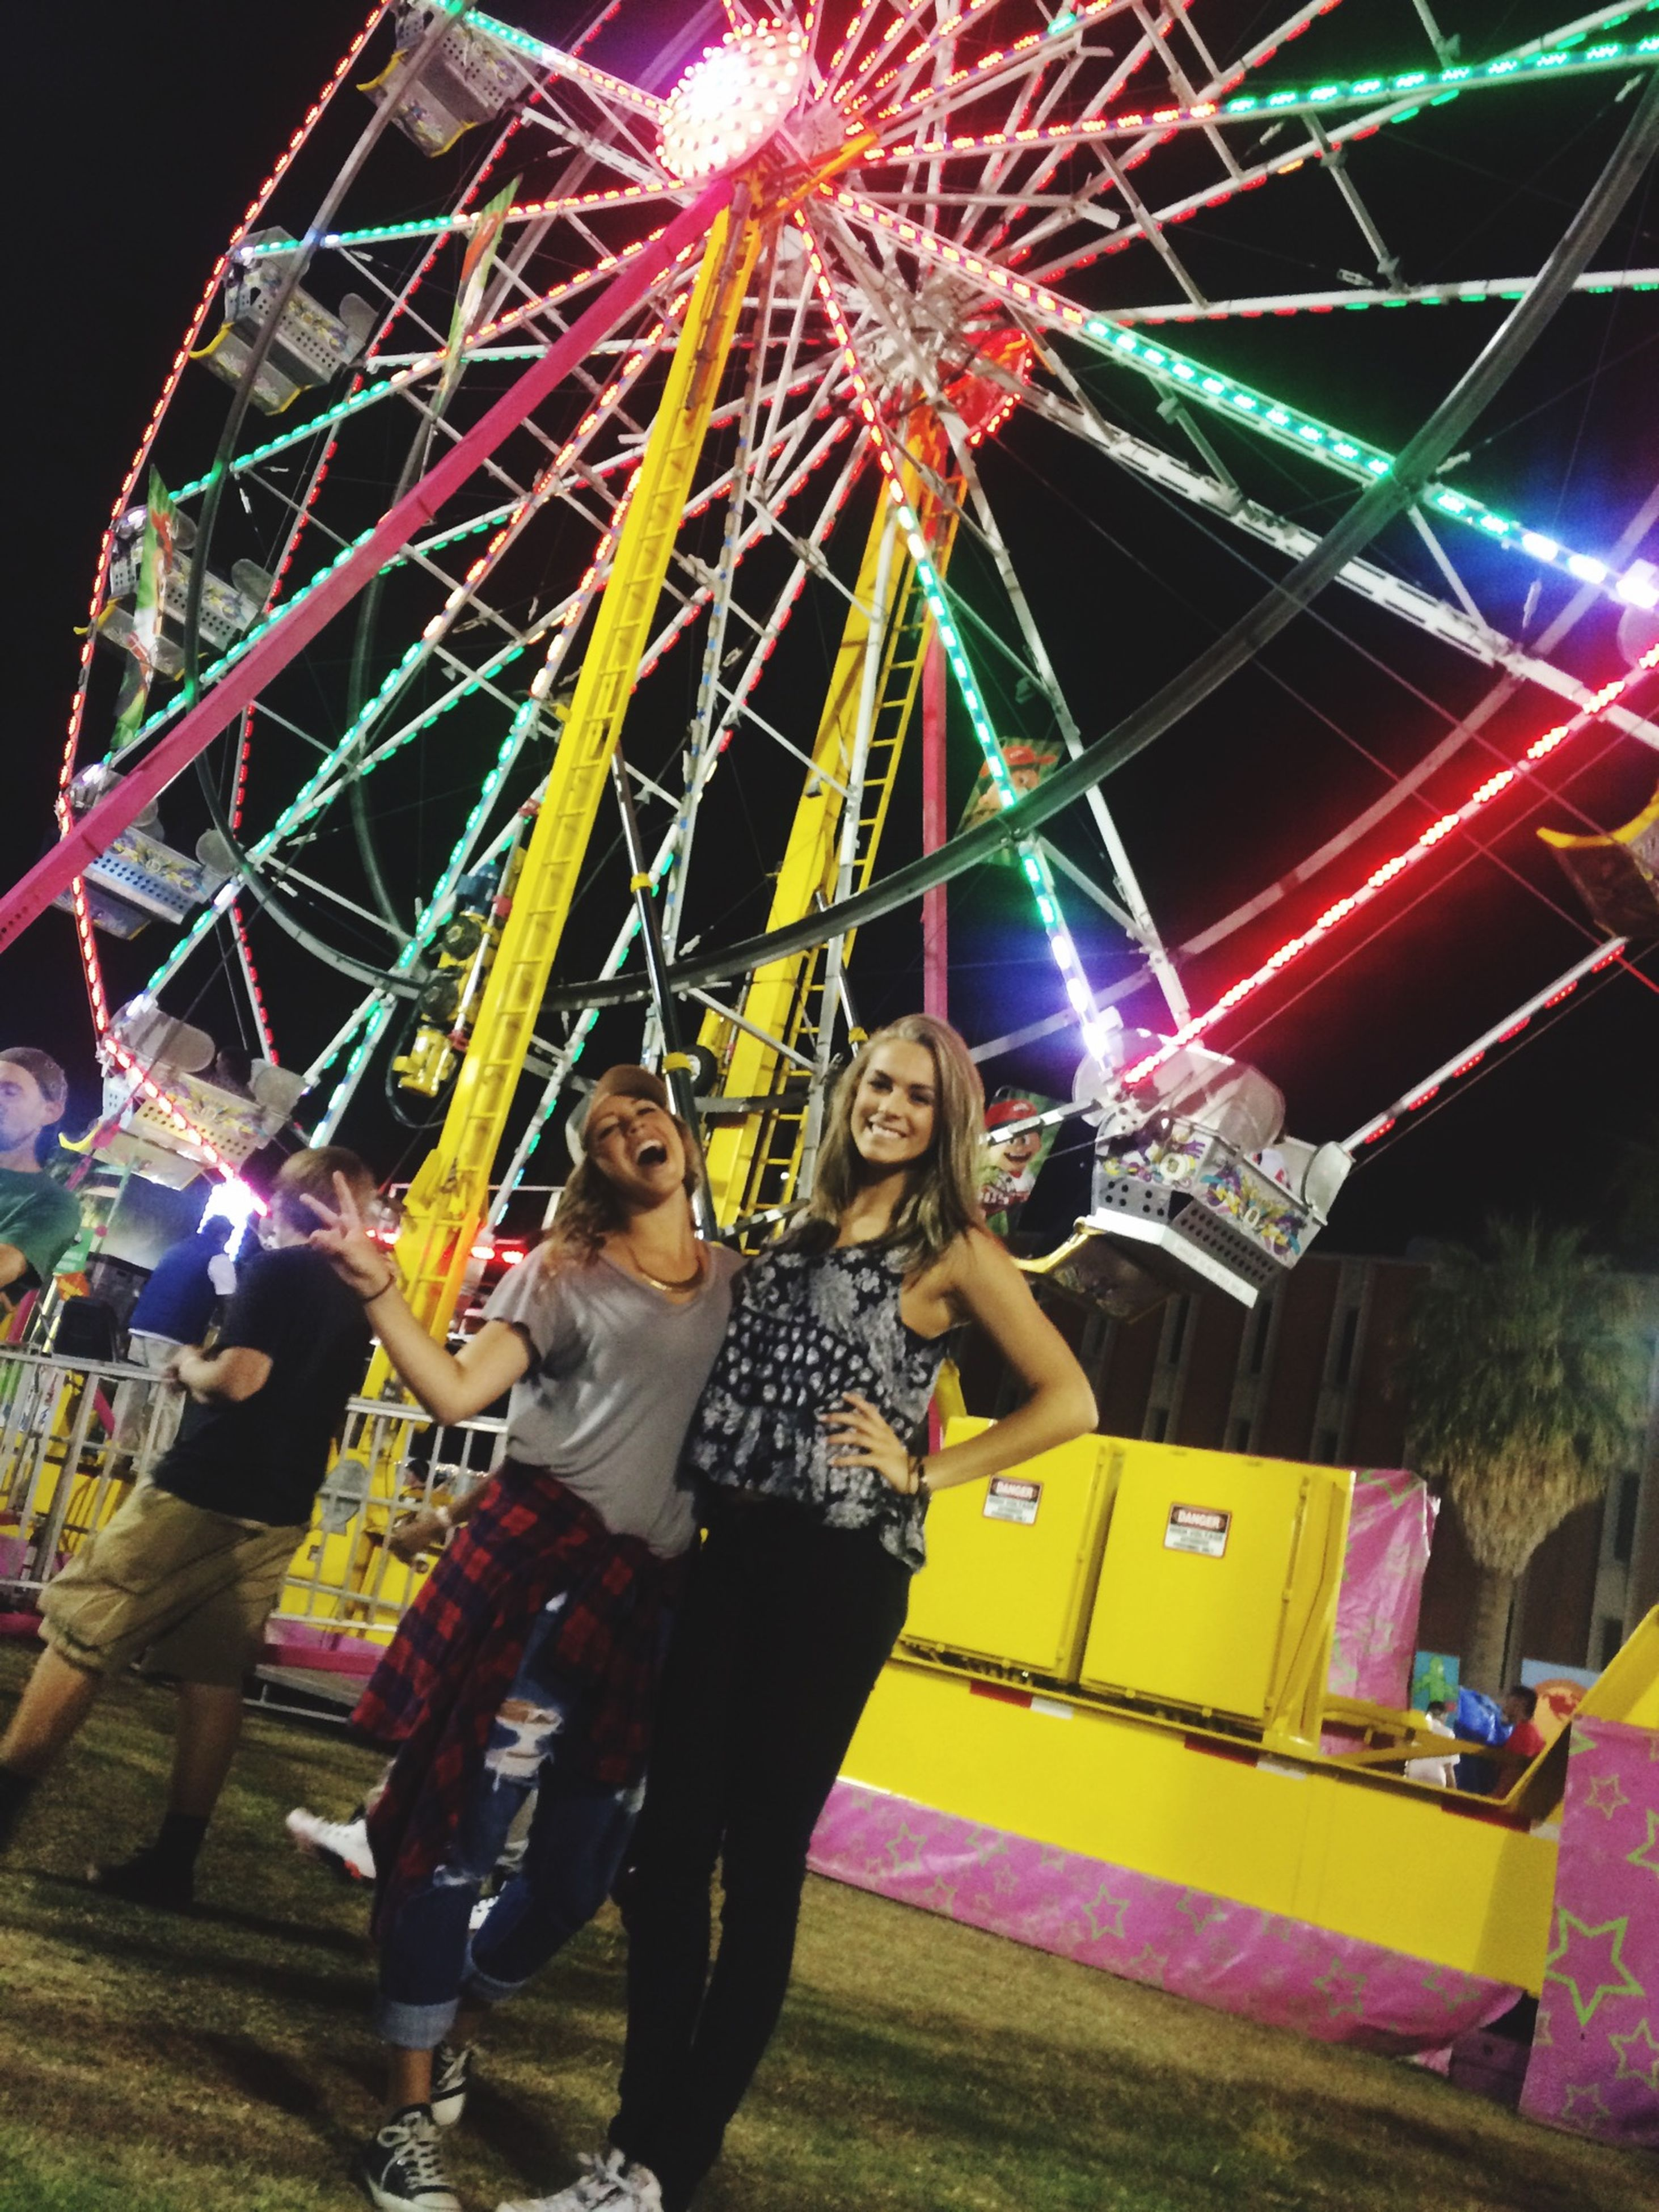 arts culture and entertainment, leisure activity, amusement park, amusement park ride, lifestyles, enjoyment, fun, ferris wheel, illuminated, men, celebration, holding, night, casual clothing, person, childhood, multi colored, standing